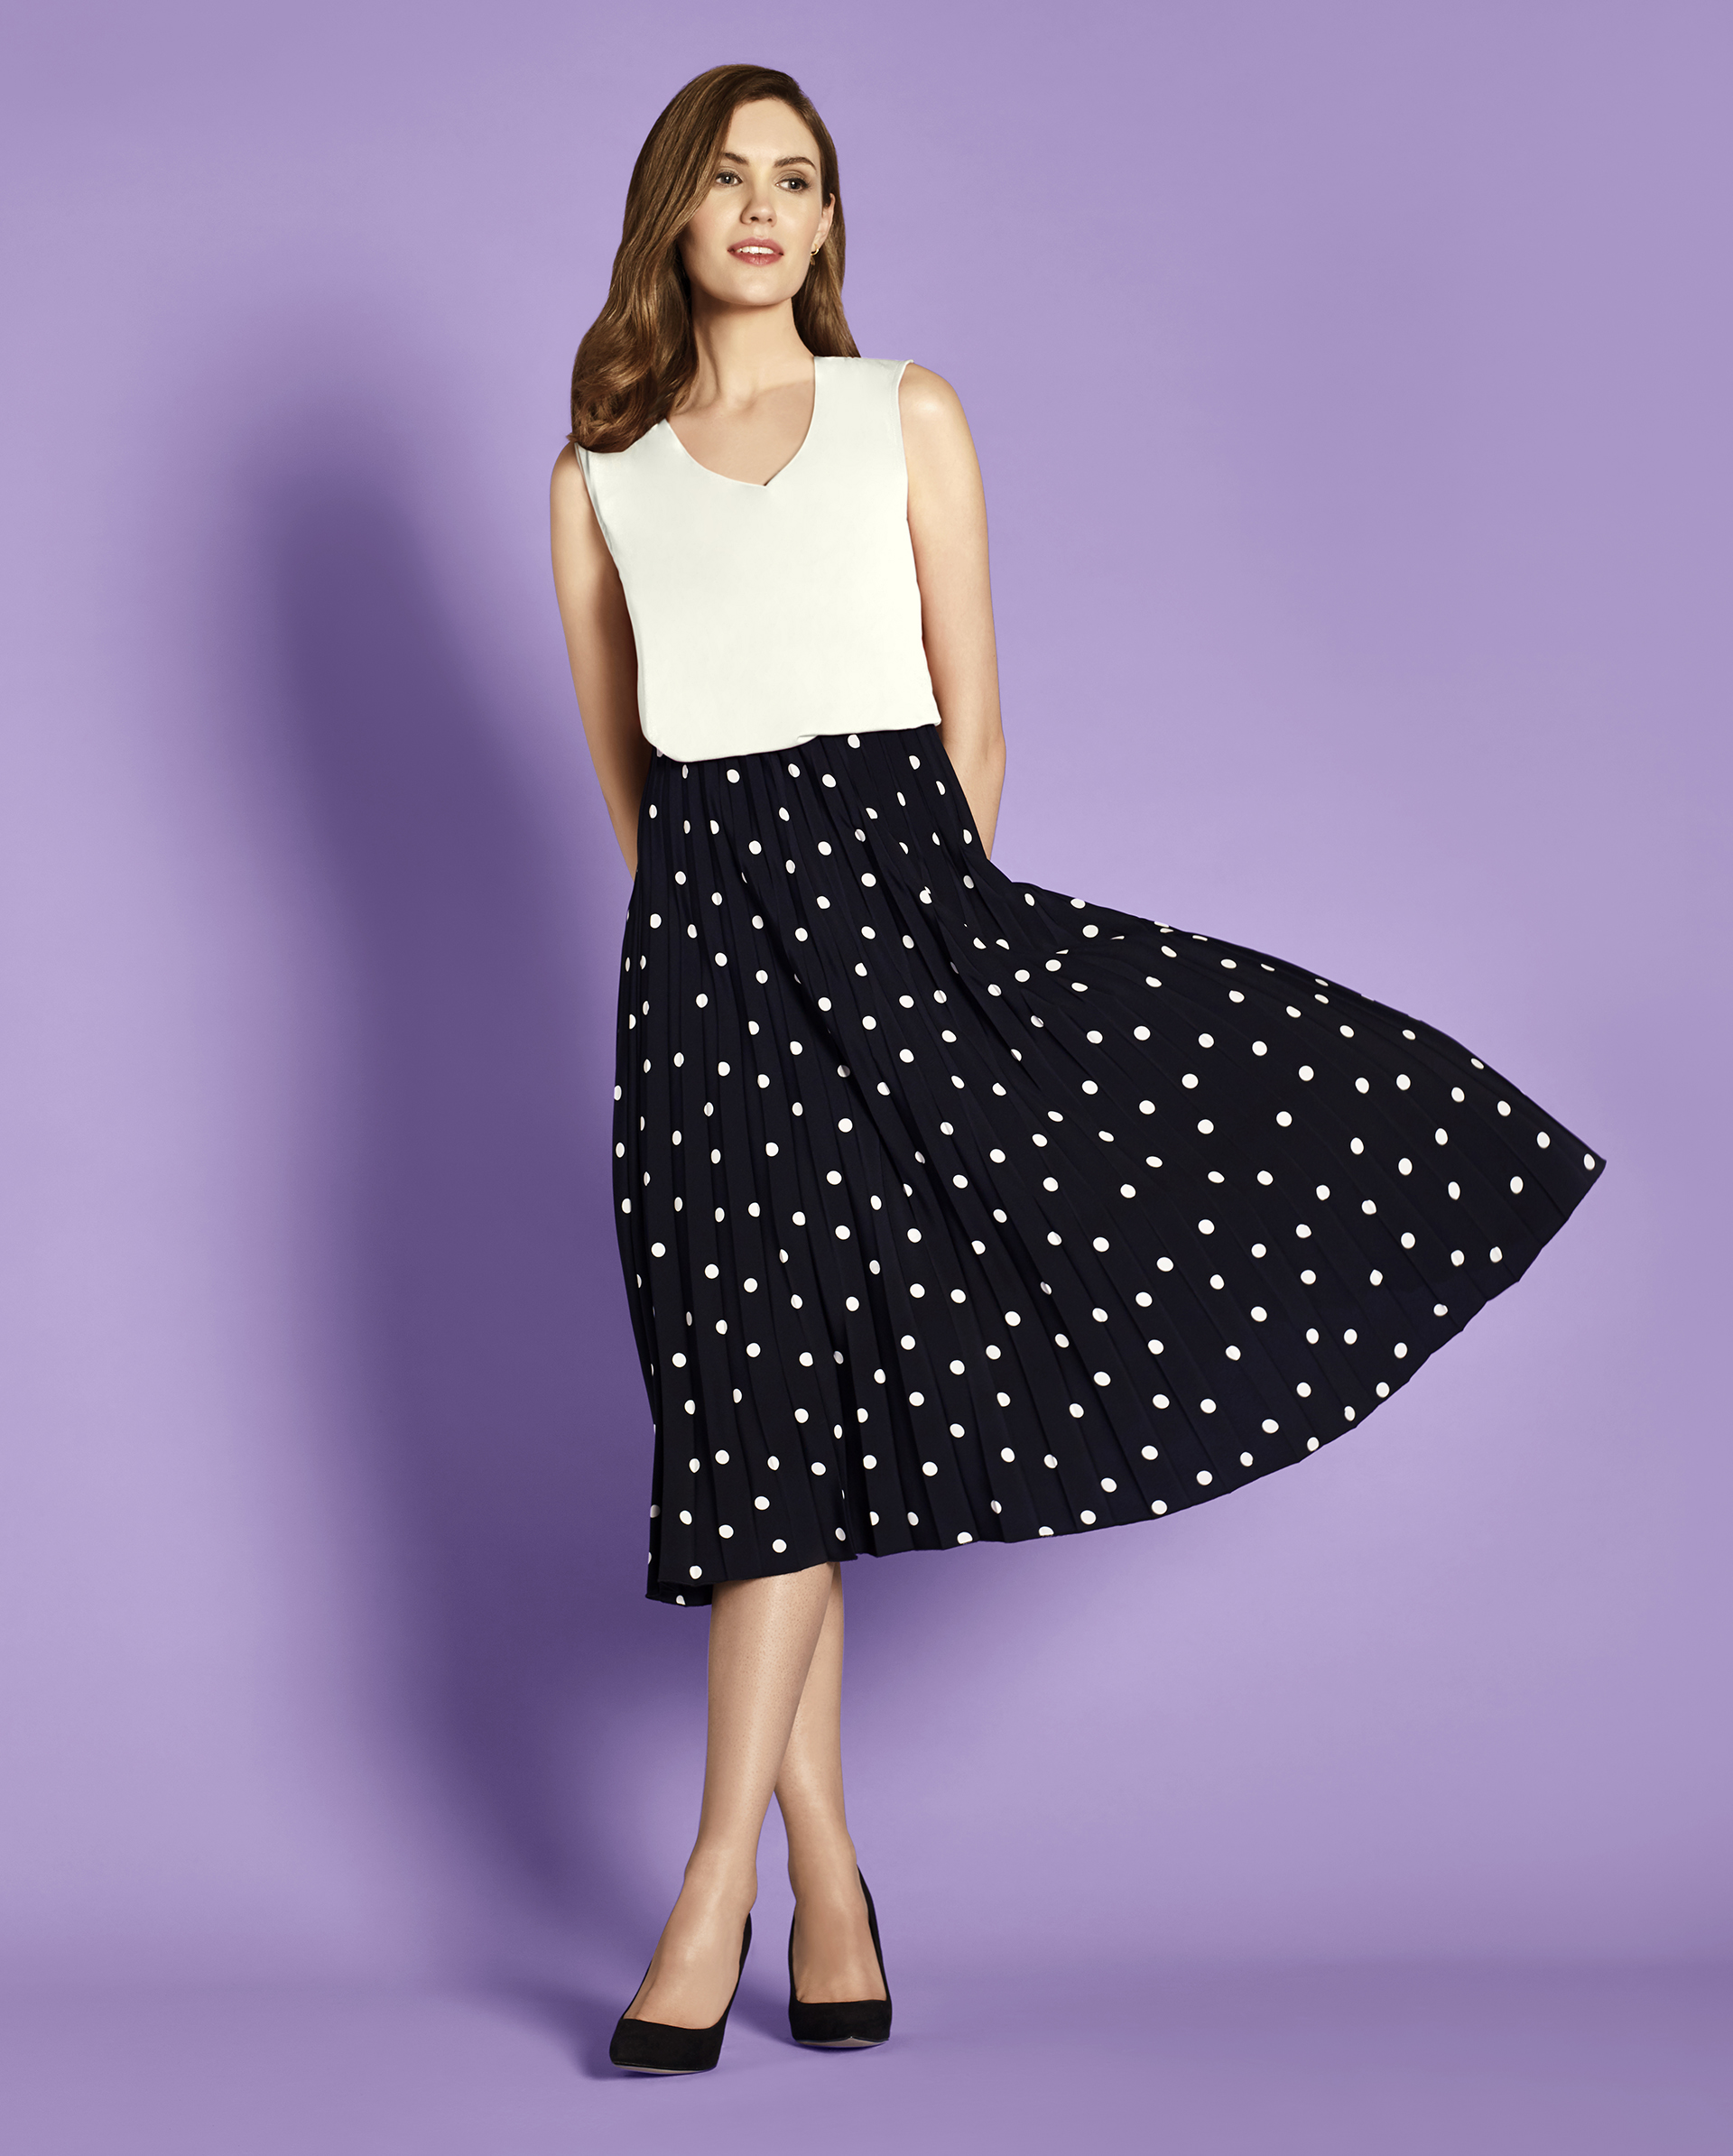 a9db1f685b Ladies Summer Skirts At Bon Marche